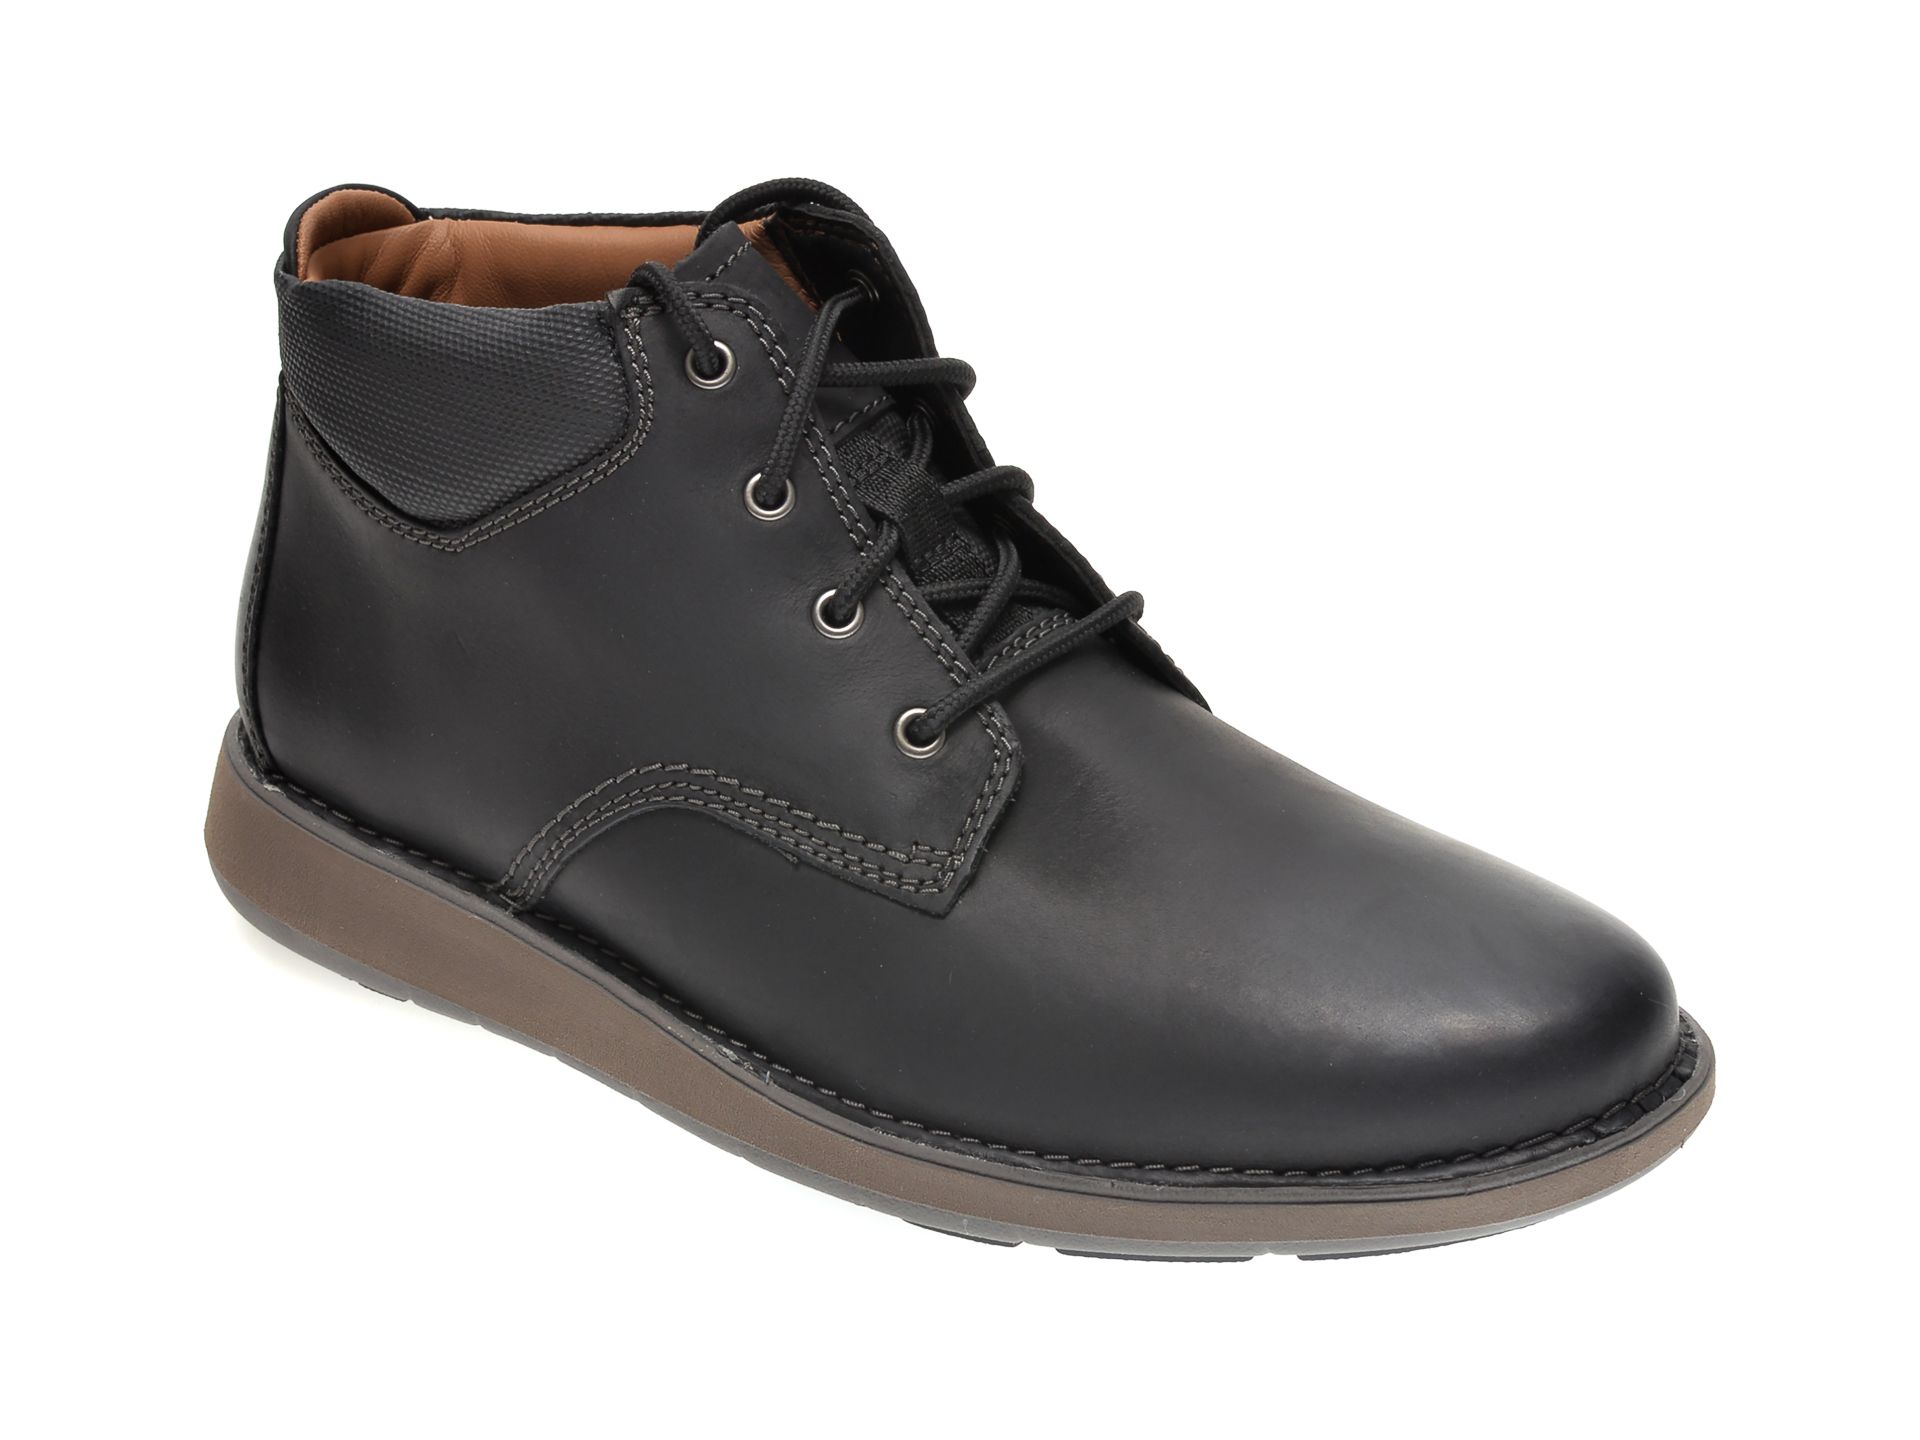 Ghete CLARKS negre, UN LARVIK TOP, din piele naturala imagine